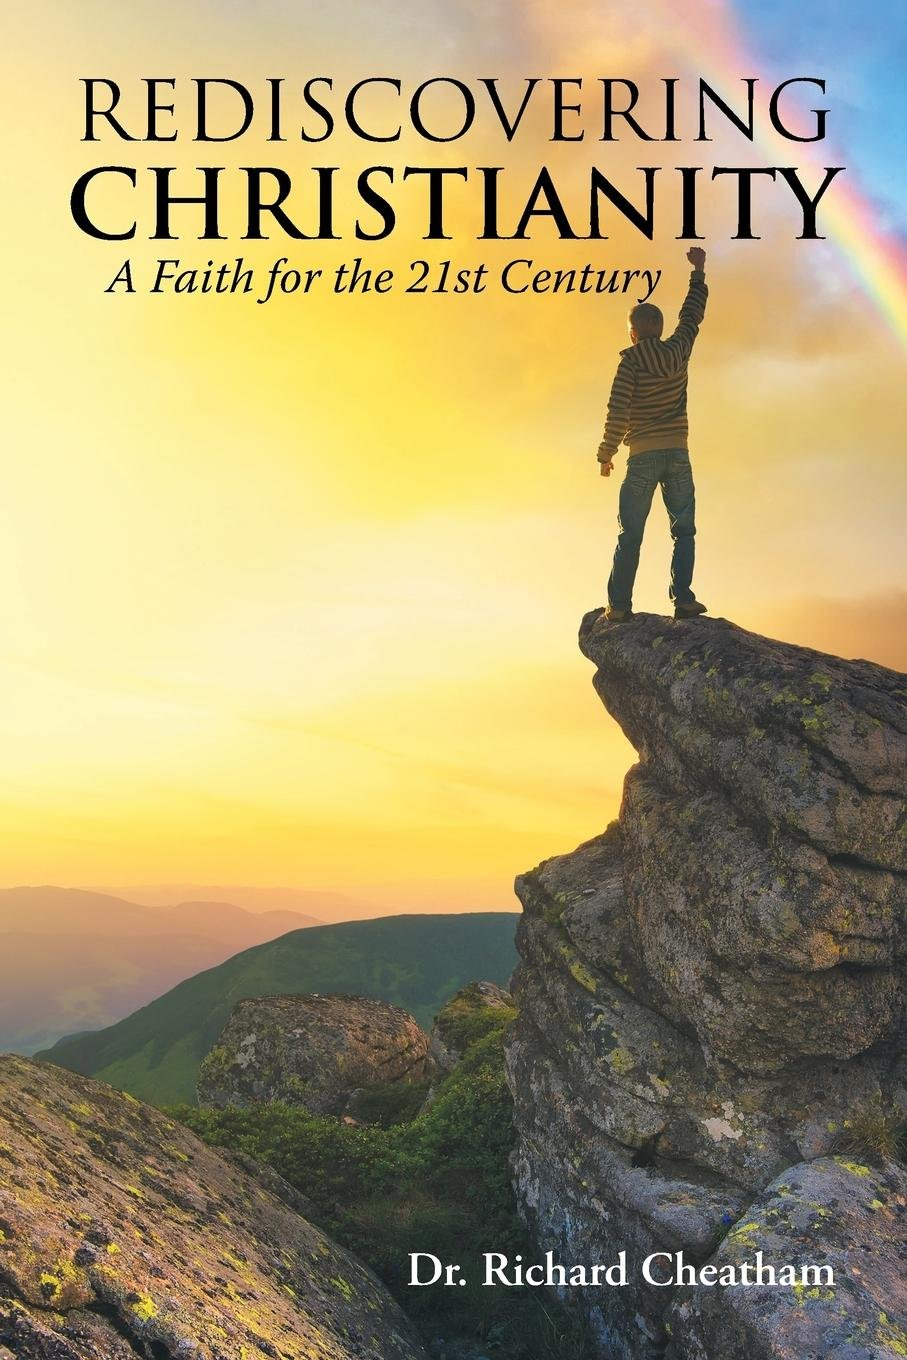 REDISCOVERING CHRISTIANITY: A FAITH FOR THE 21ST CENTURY